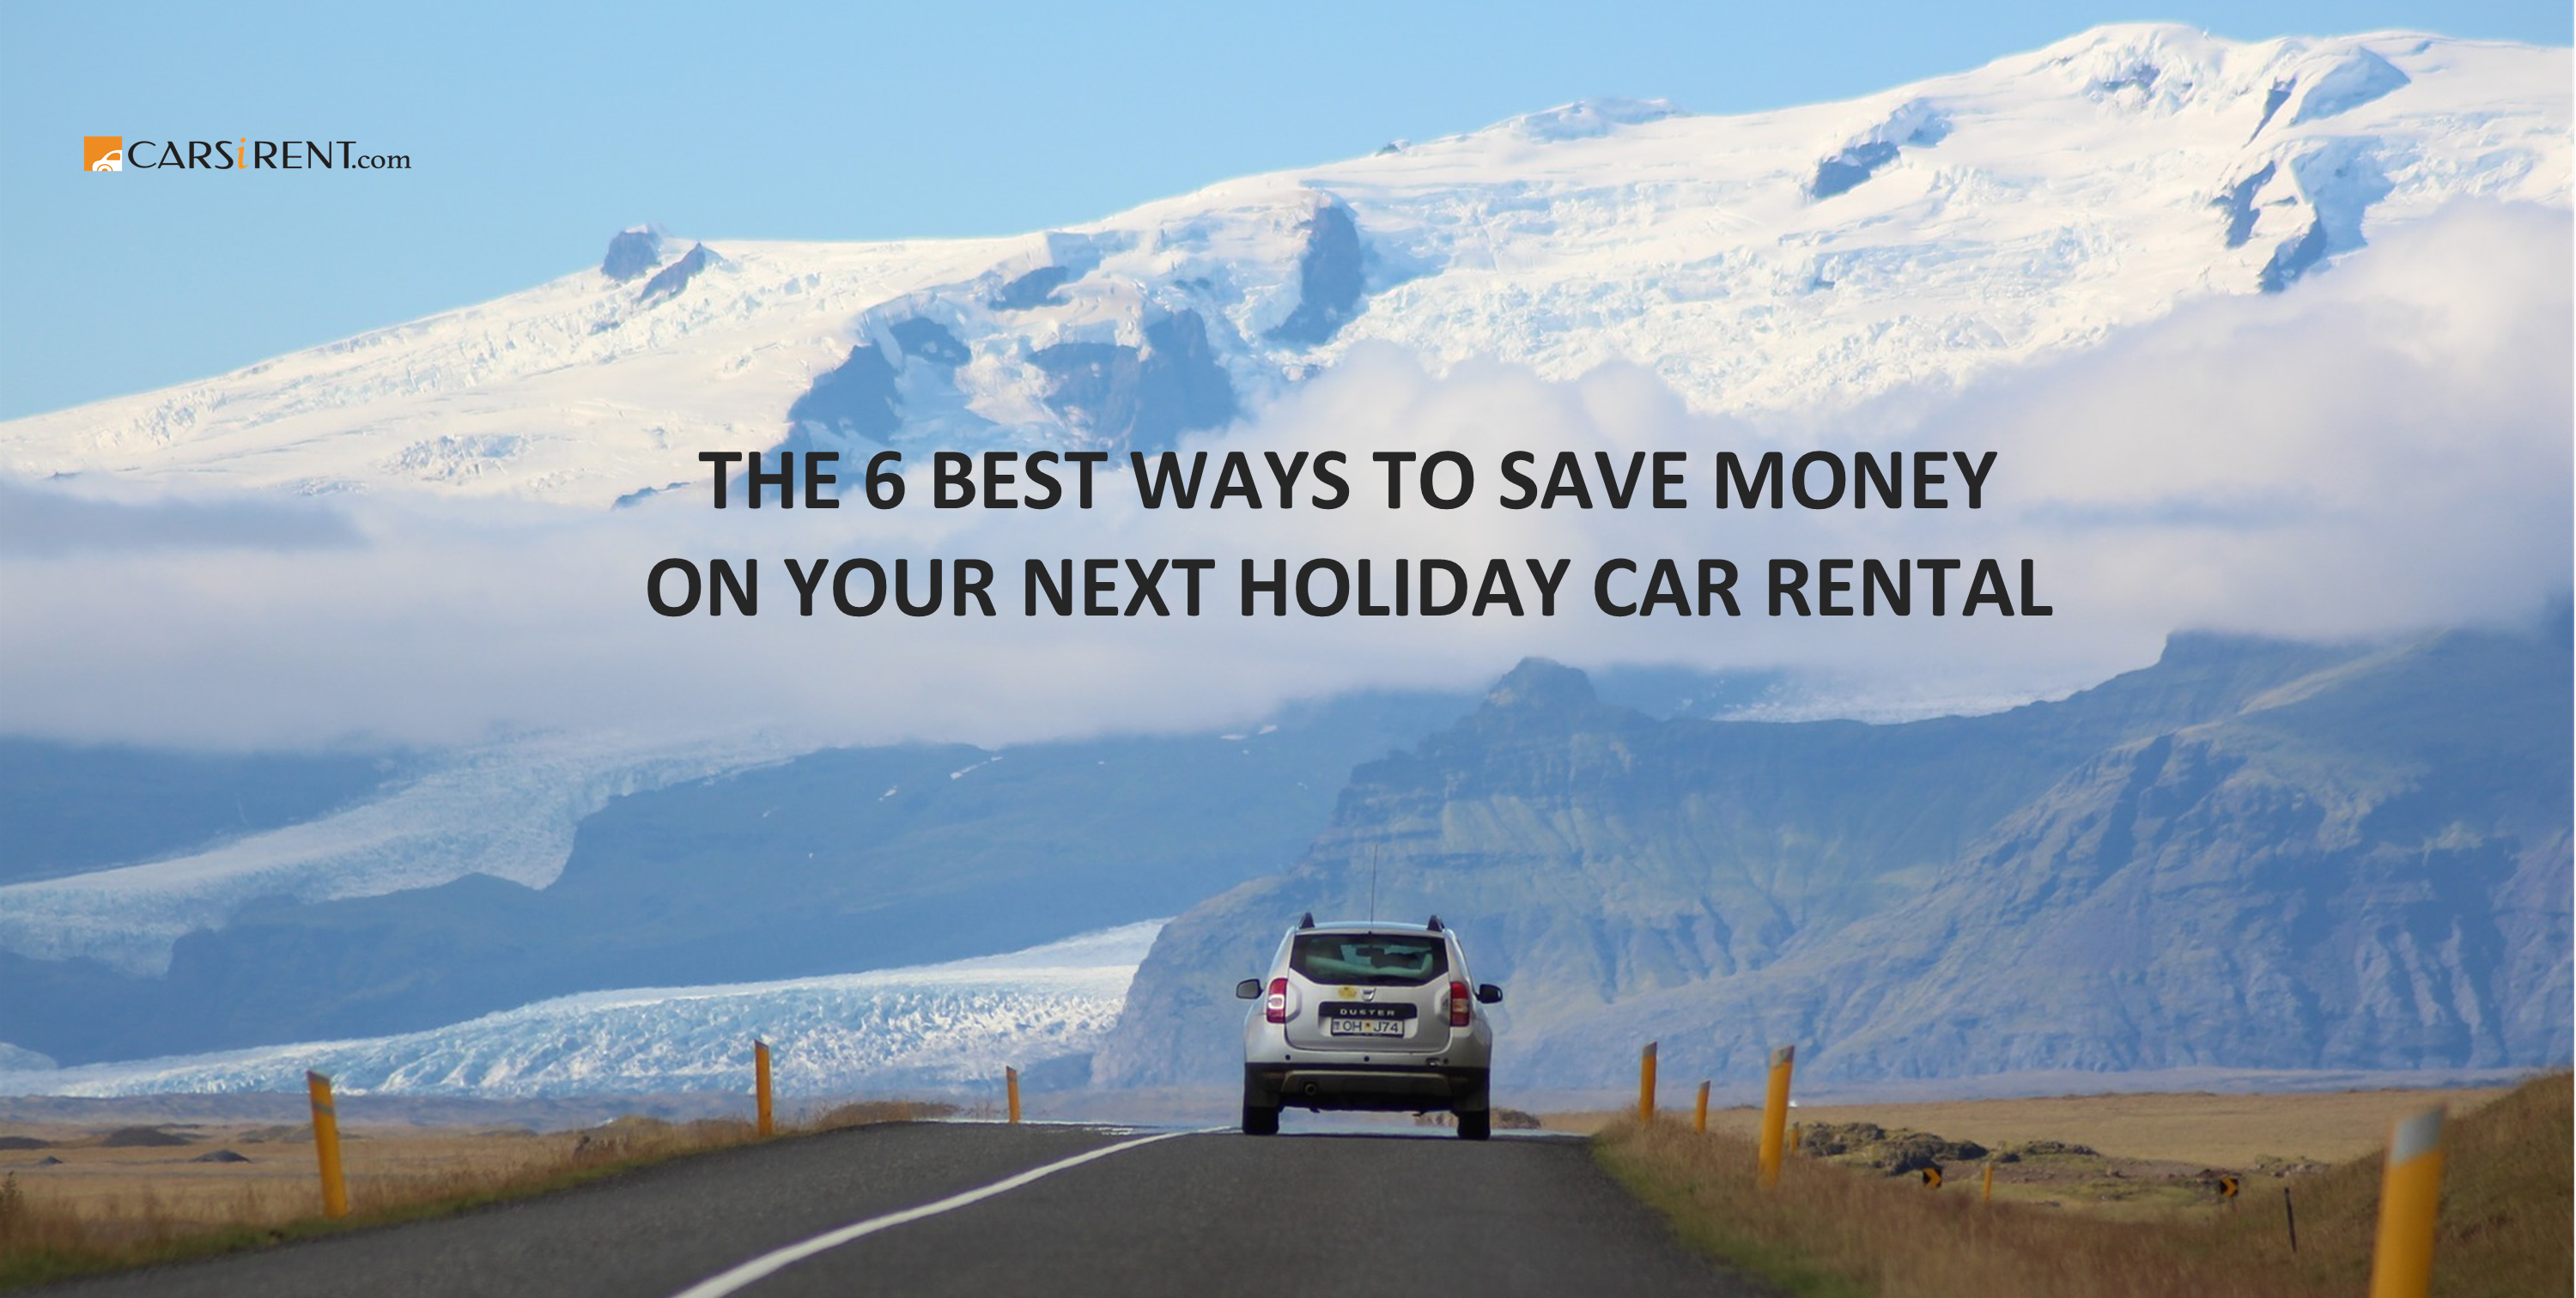 The 6 Best Ways to Save Money on Your Next Holiday Car Rental